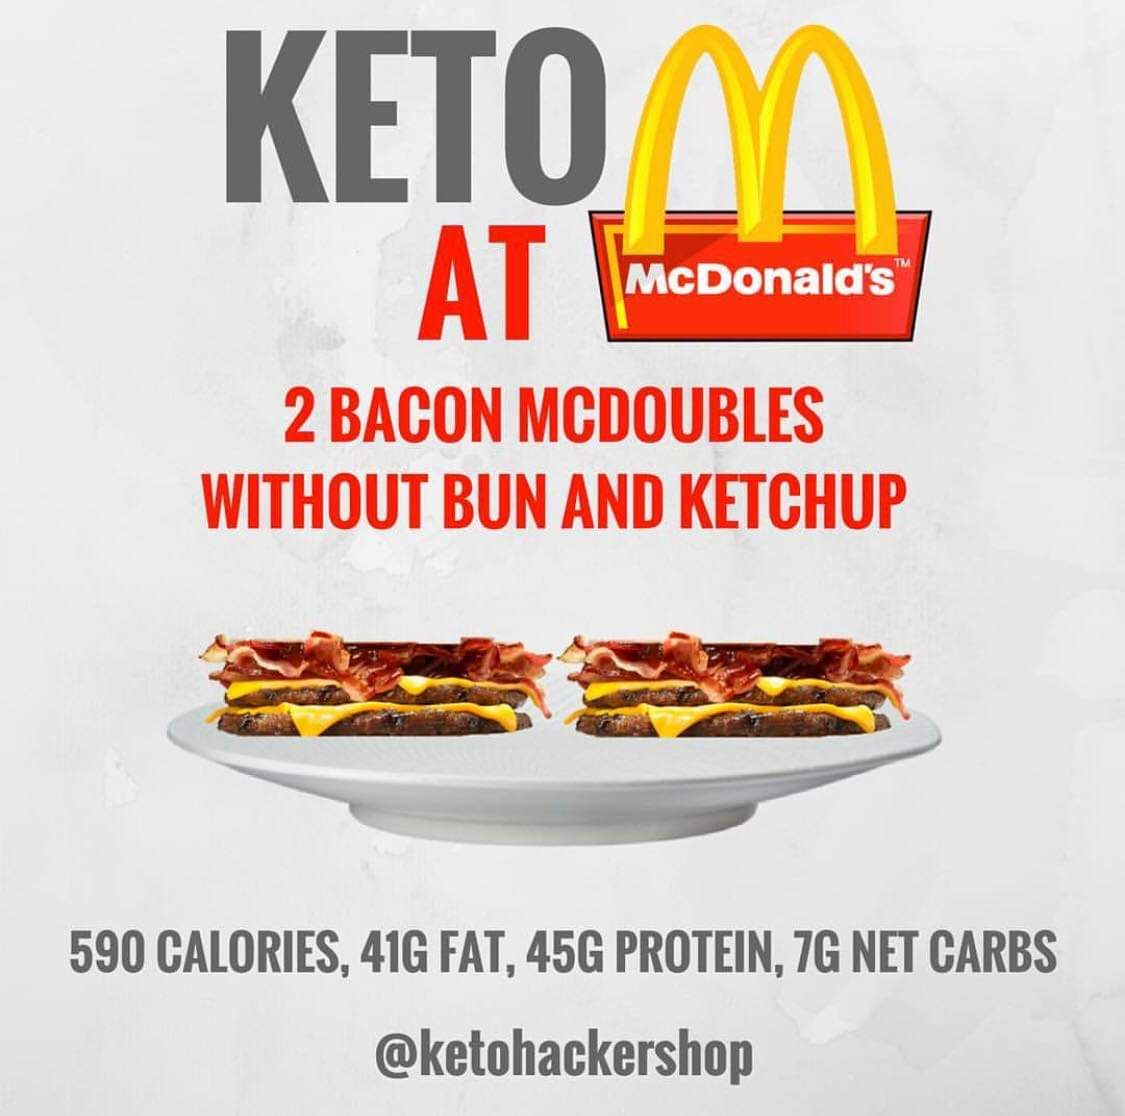 Tips And Tricks To Encourage Better Nutrition: Keto At McDonalds. Keto Restaurant Hacks. Keto Tips And